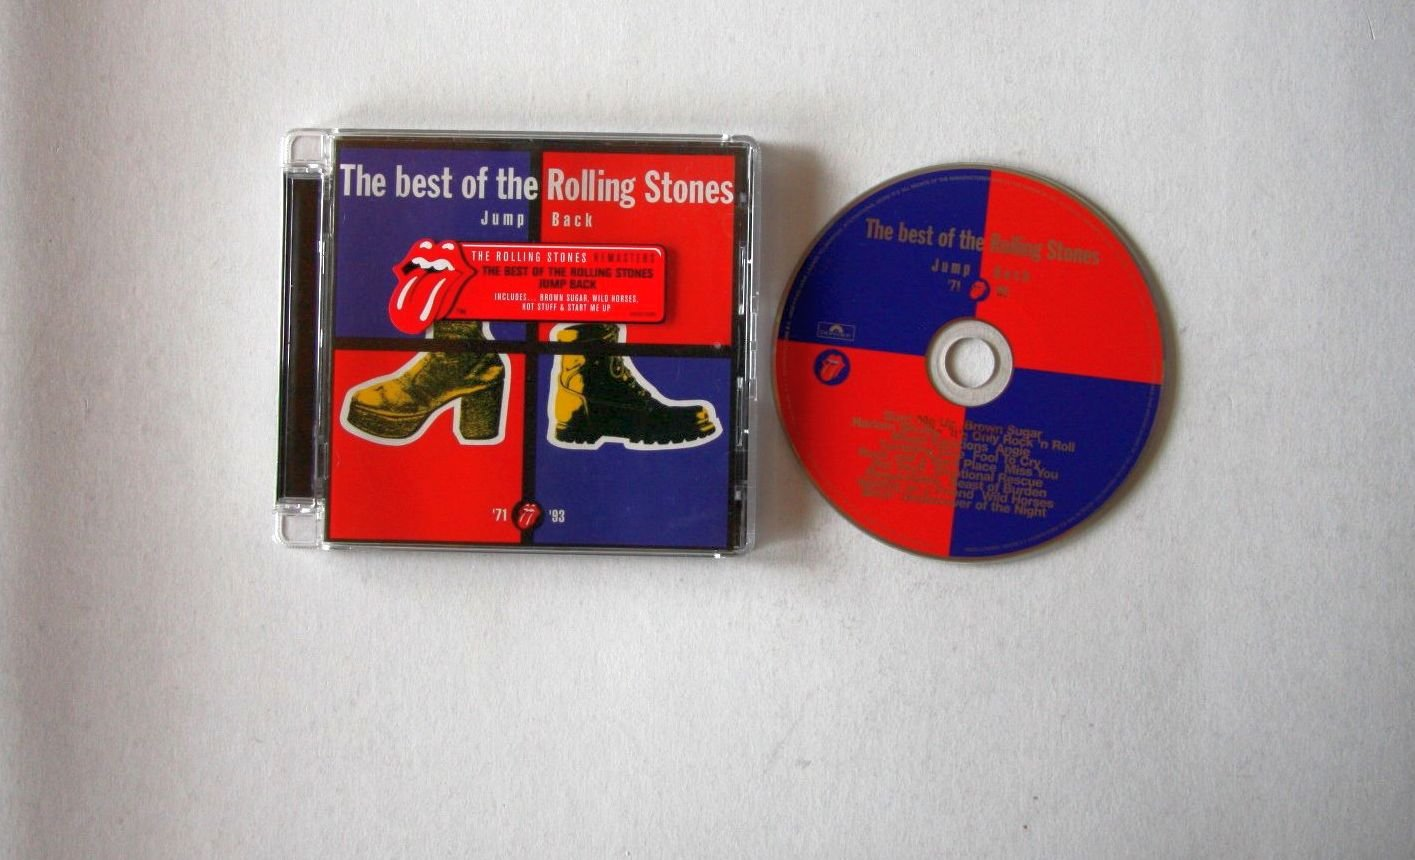 Rolling Stones - Jump Back (the Best Of The Rolling Stones '71 - '93) Album